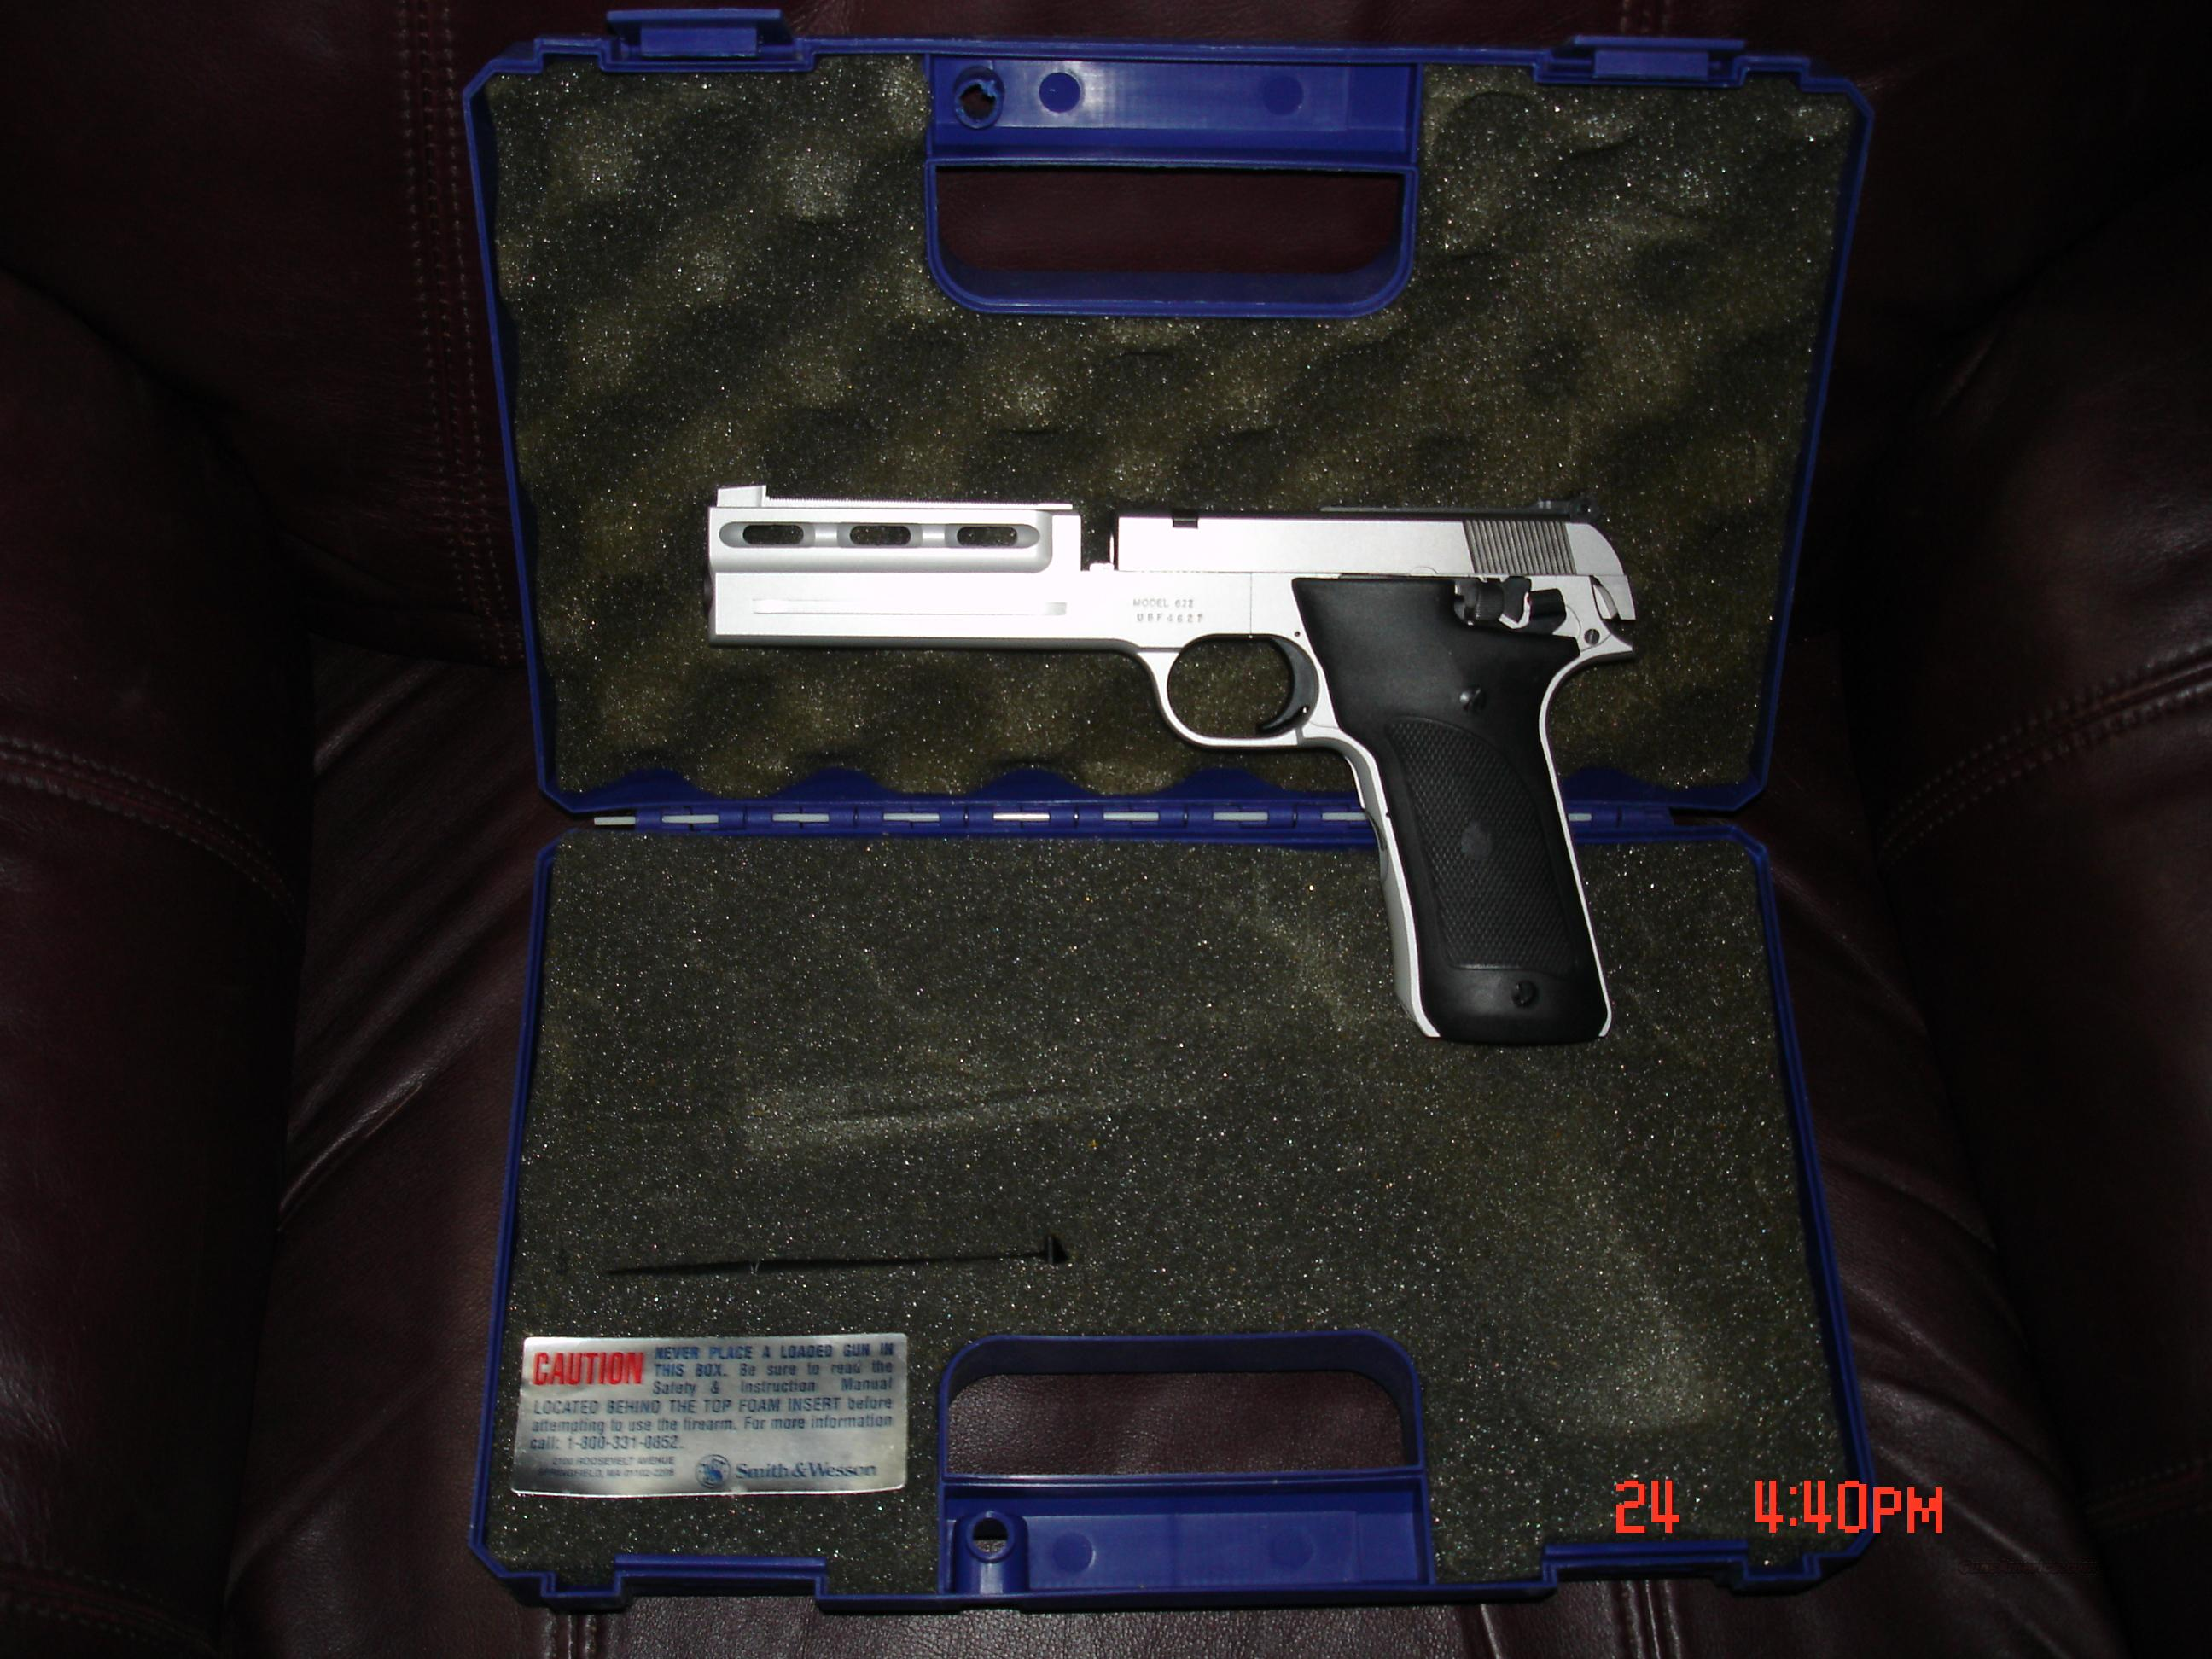 Smith & Wesson Model 622 - Production Discontinued  in 1996  Guns > Pistols > Smith & Wesson Pistols - Autos > .22 Autos